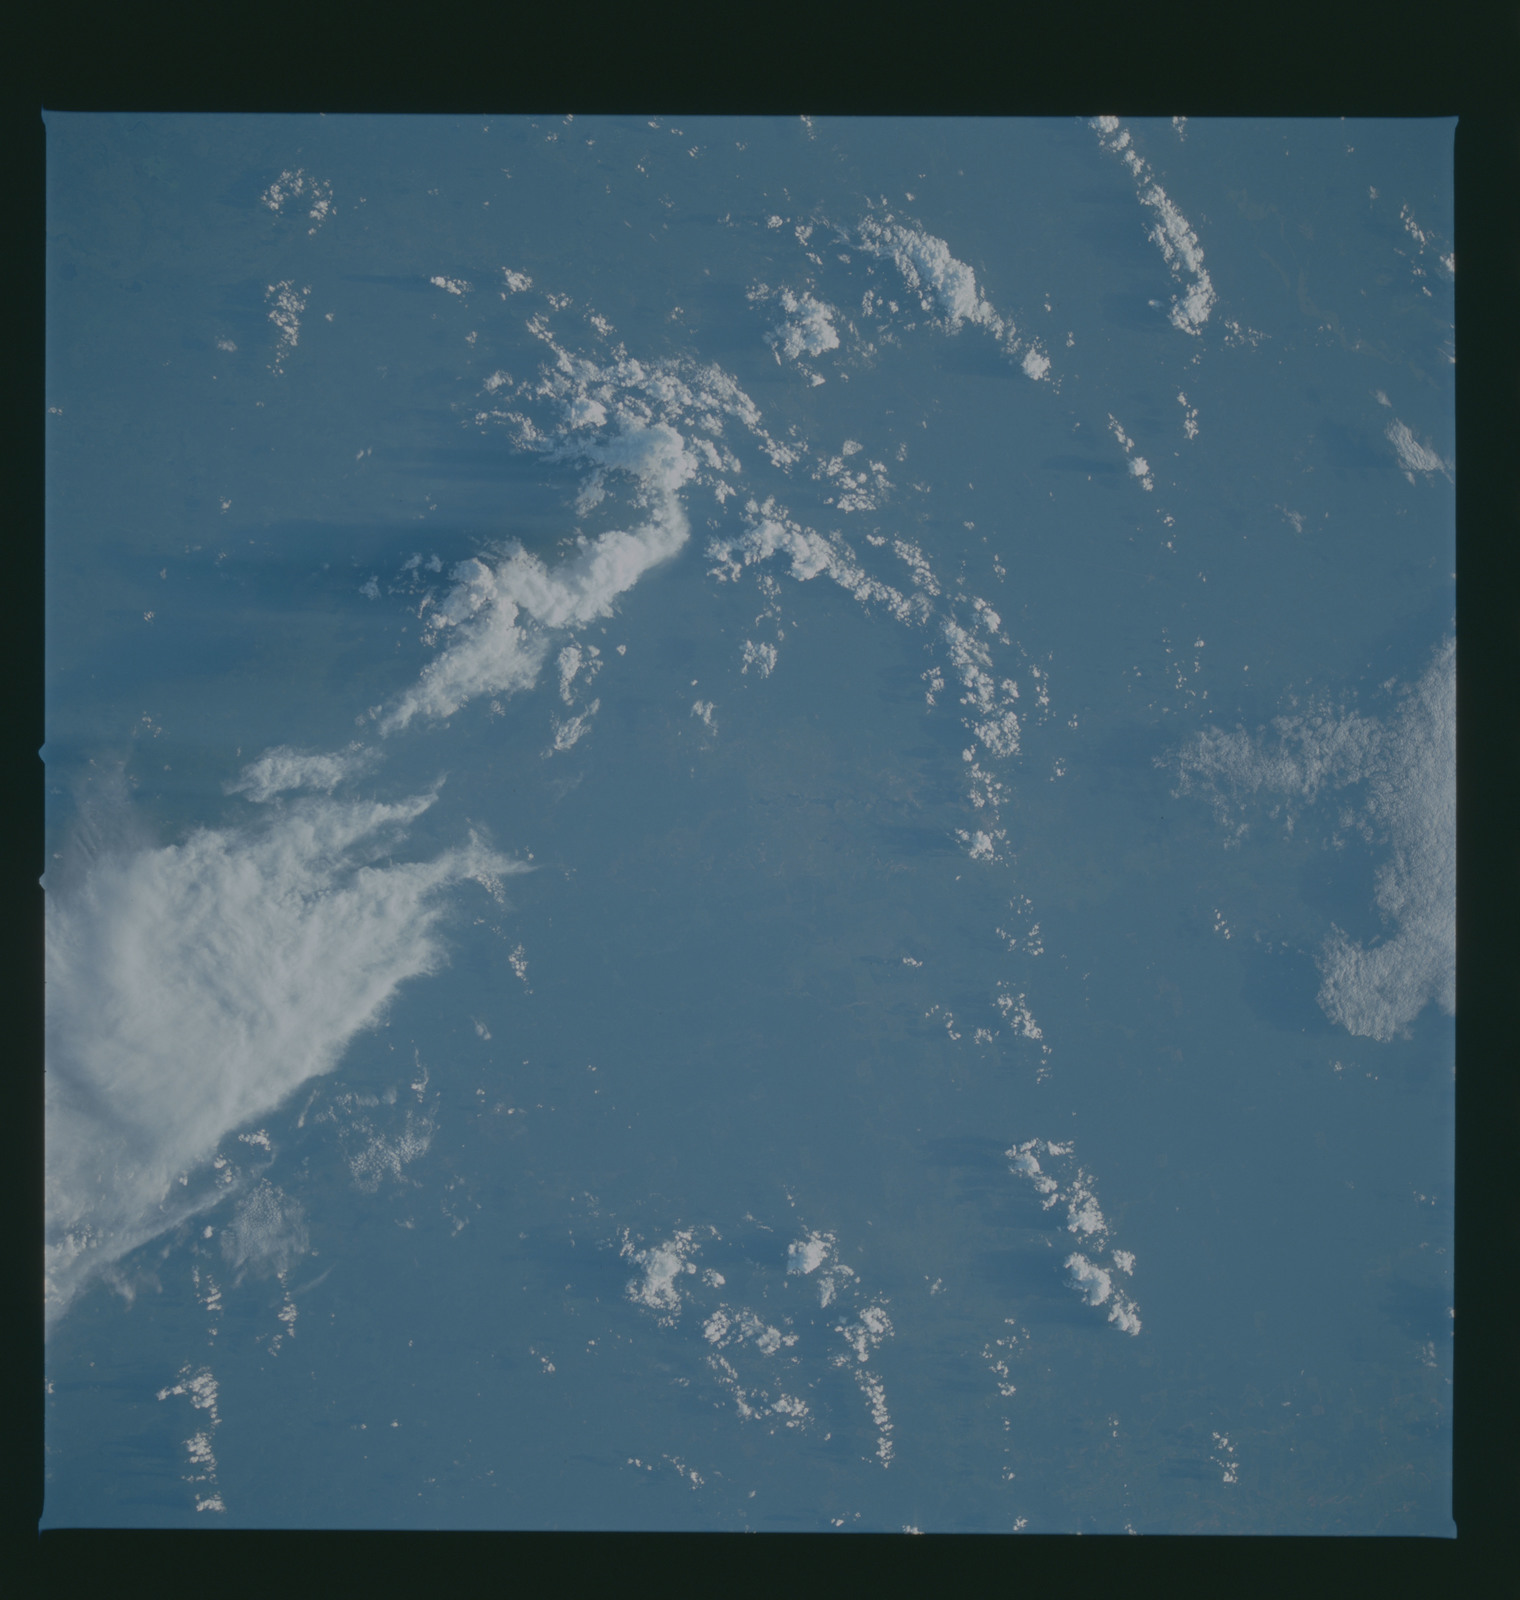 S37-96-066 - STS-037 - Earth observations taken from OV-104 during STS-37 mission